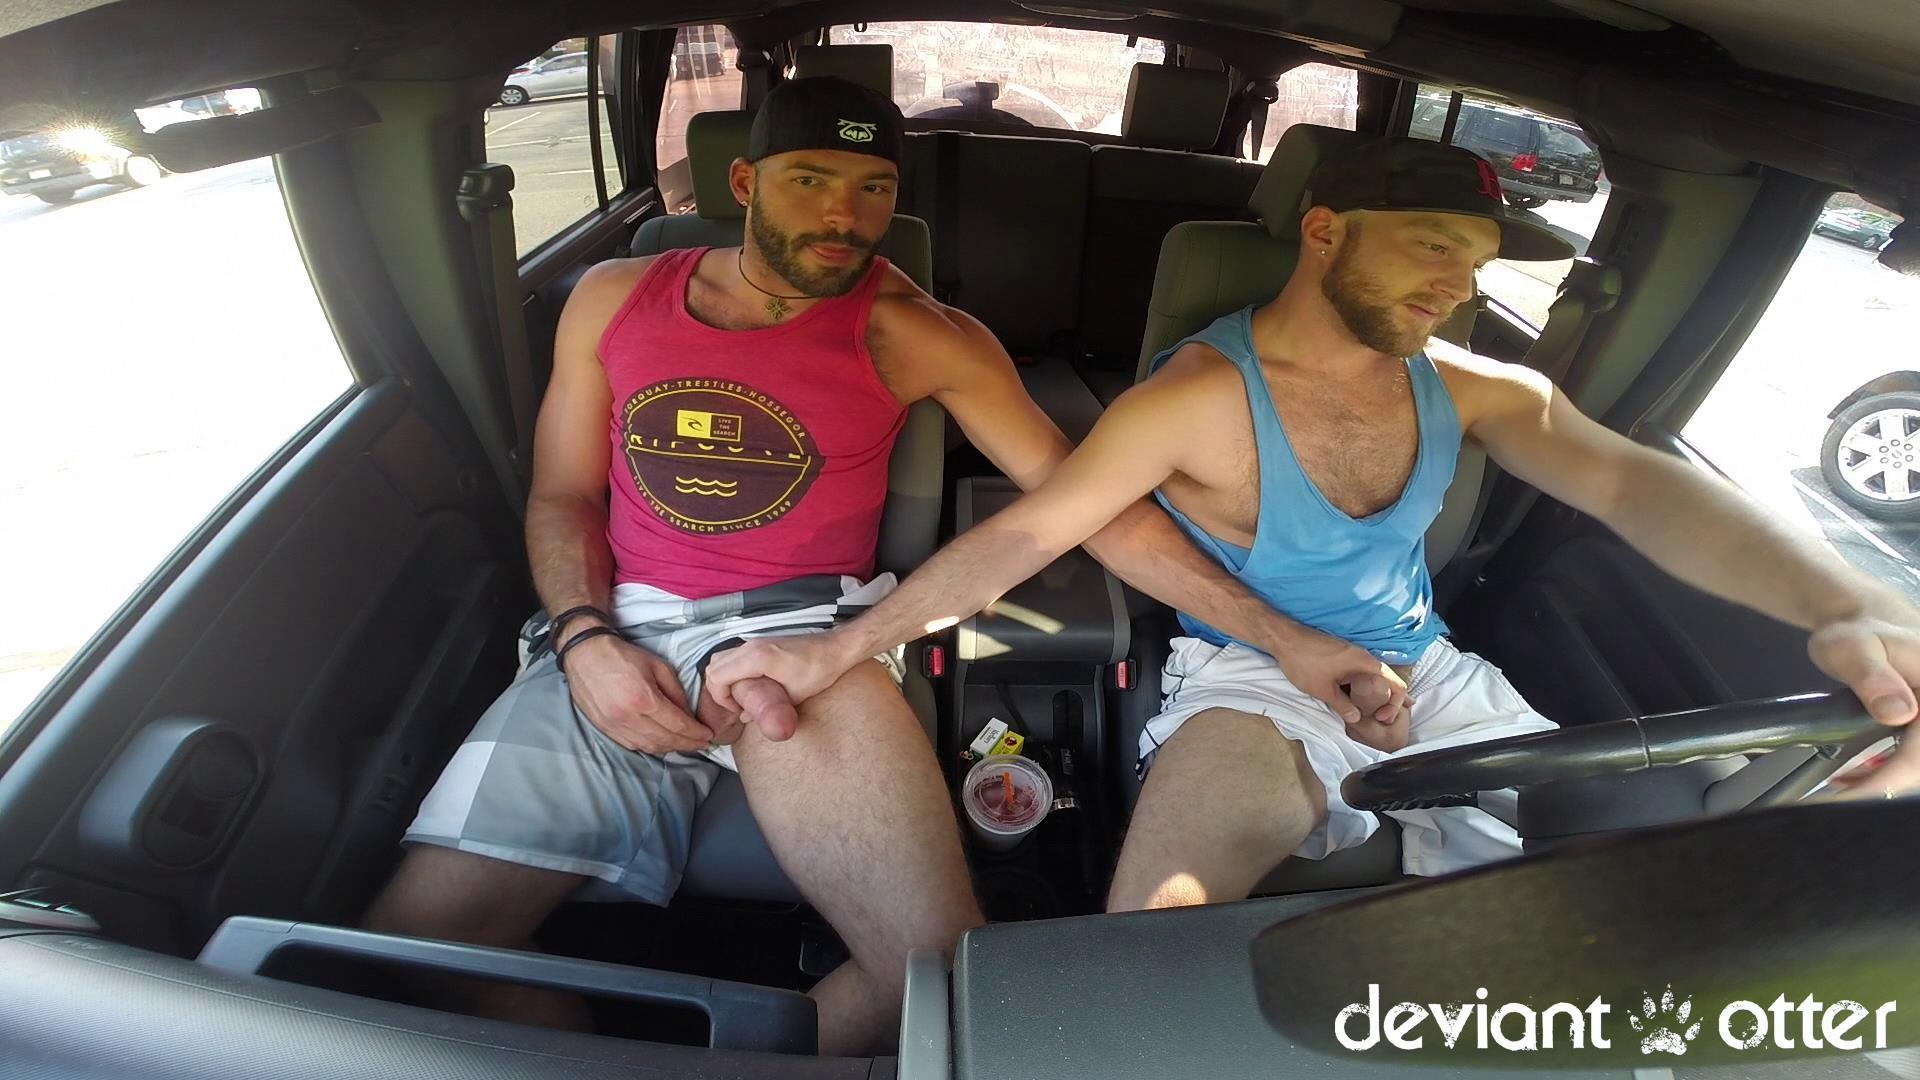 Deviant Otter Xavier Sucking Cock In Public Hairy Guys Amateur Gay Porn 04 Masculine Hairy Guys Sucking Each Others Cock In A Parking Lot